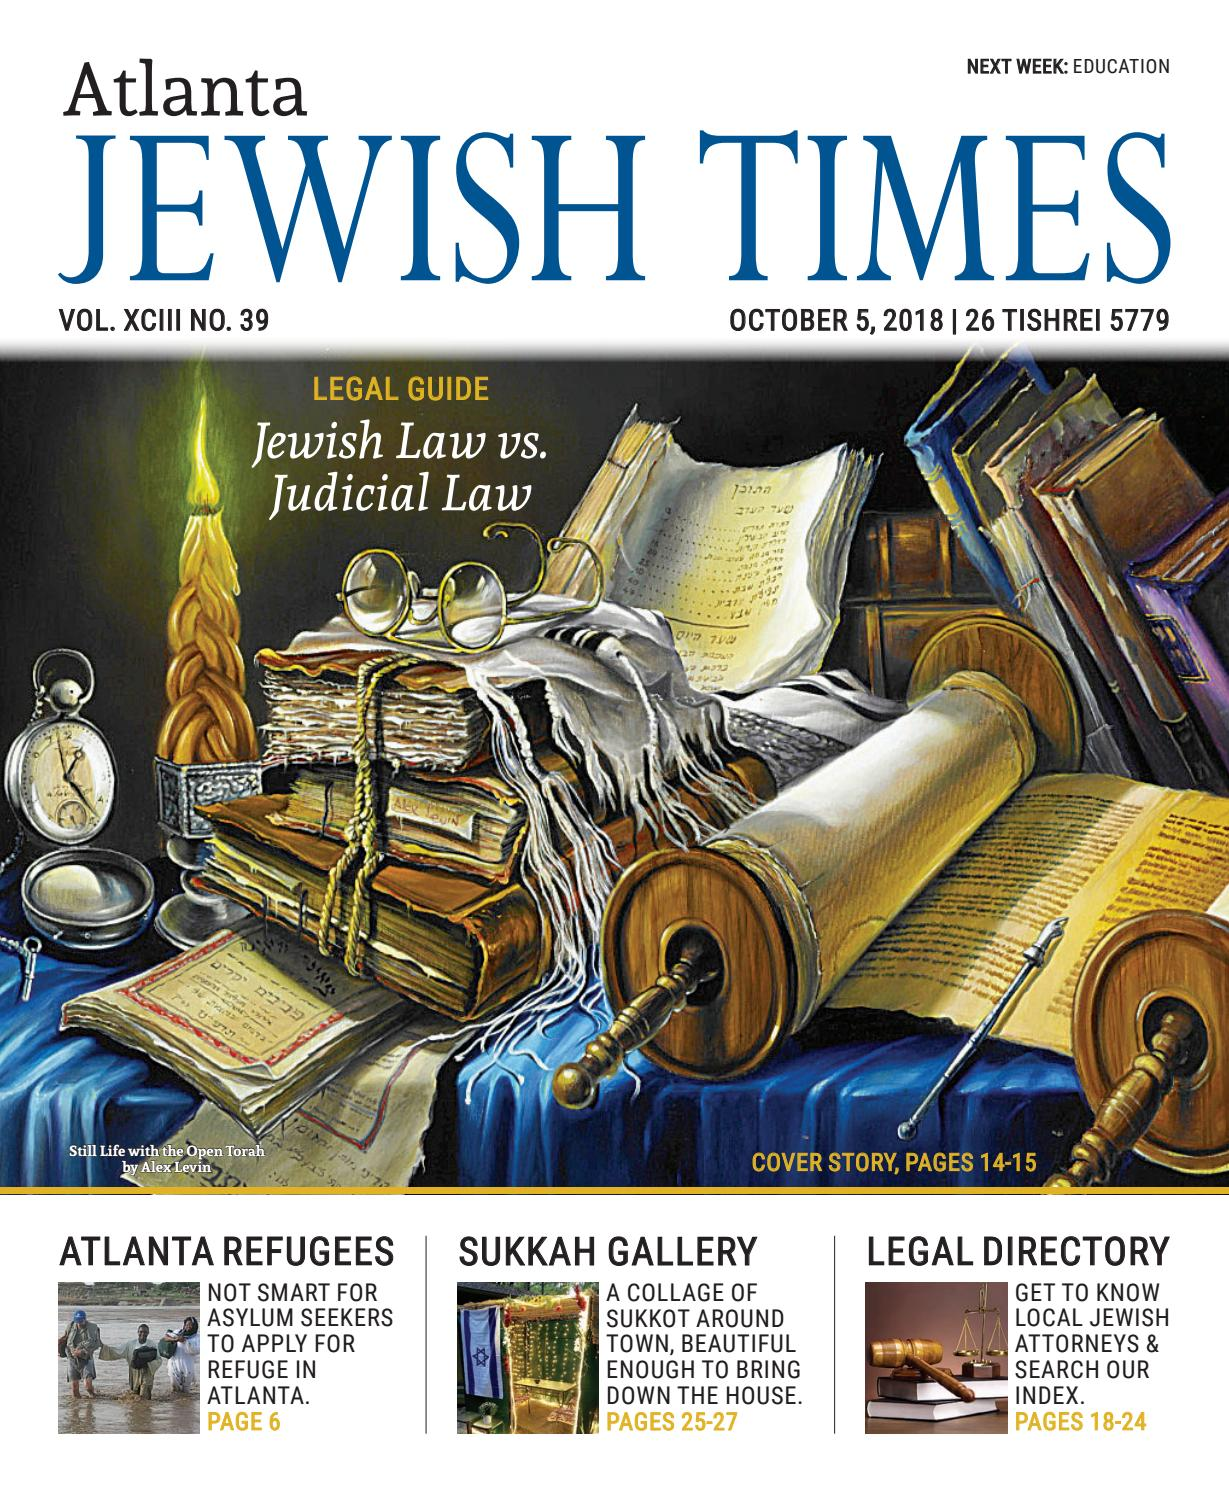 Atlanta Jewish Times Vol Xciii No 39 October 5 2018 By Atlanta